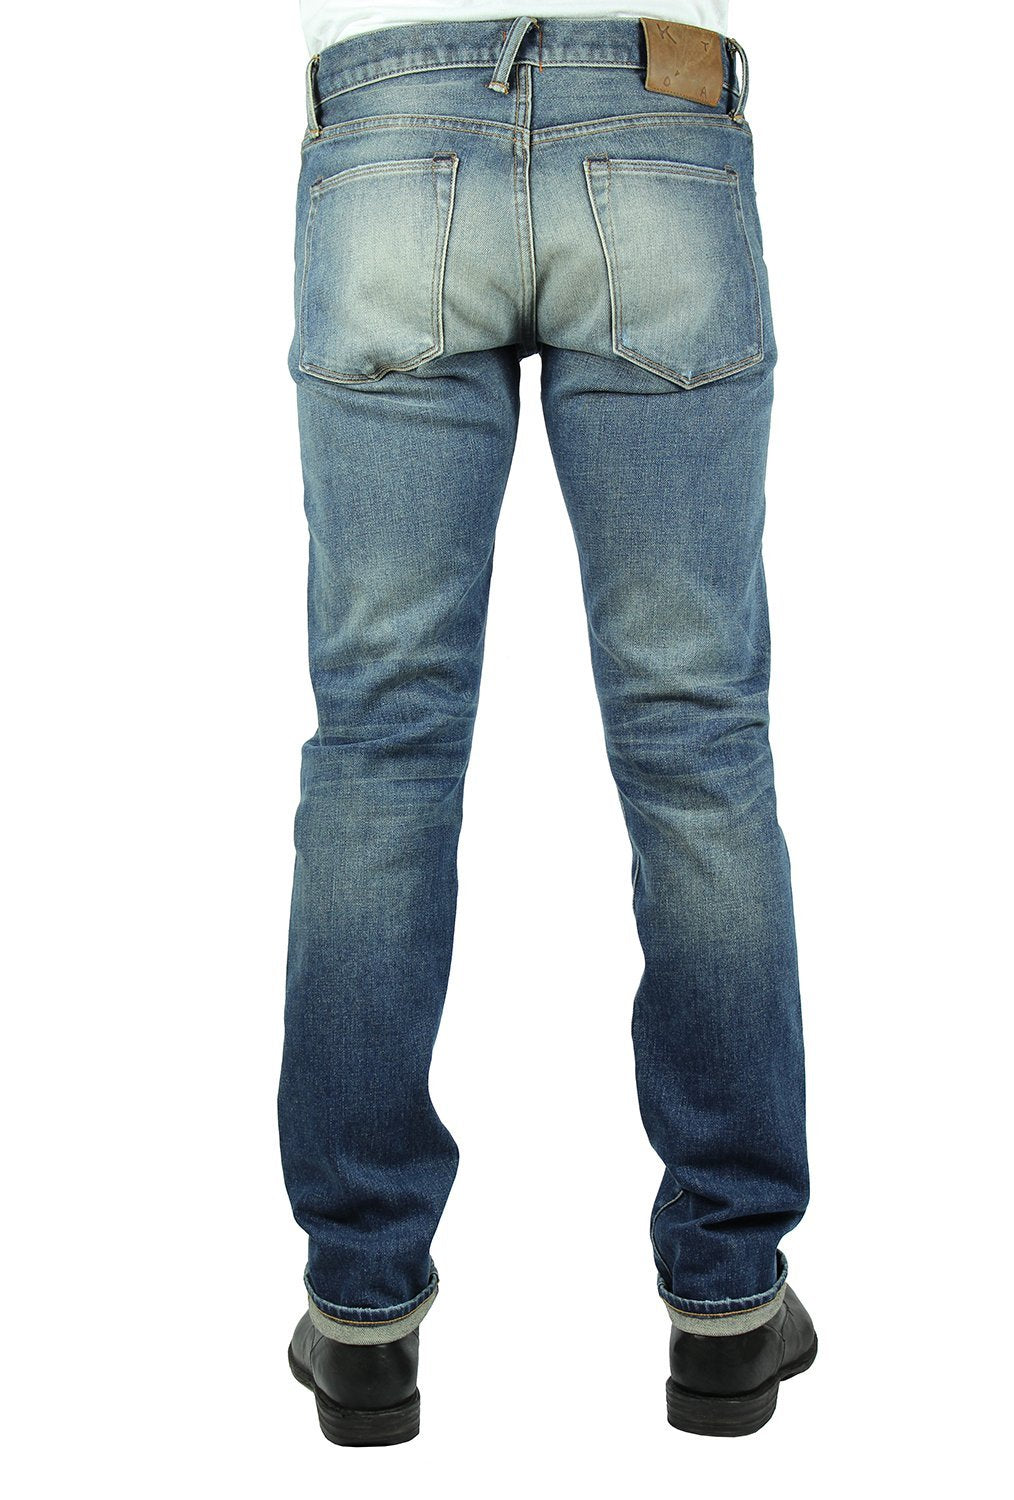 """THE PEN"" SLIM - HENDRIX 14OZ 4-WAY STRETCH SELVEDGE JEANS"